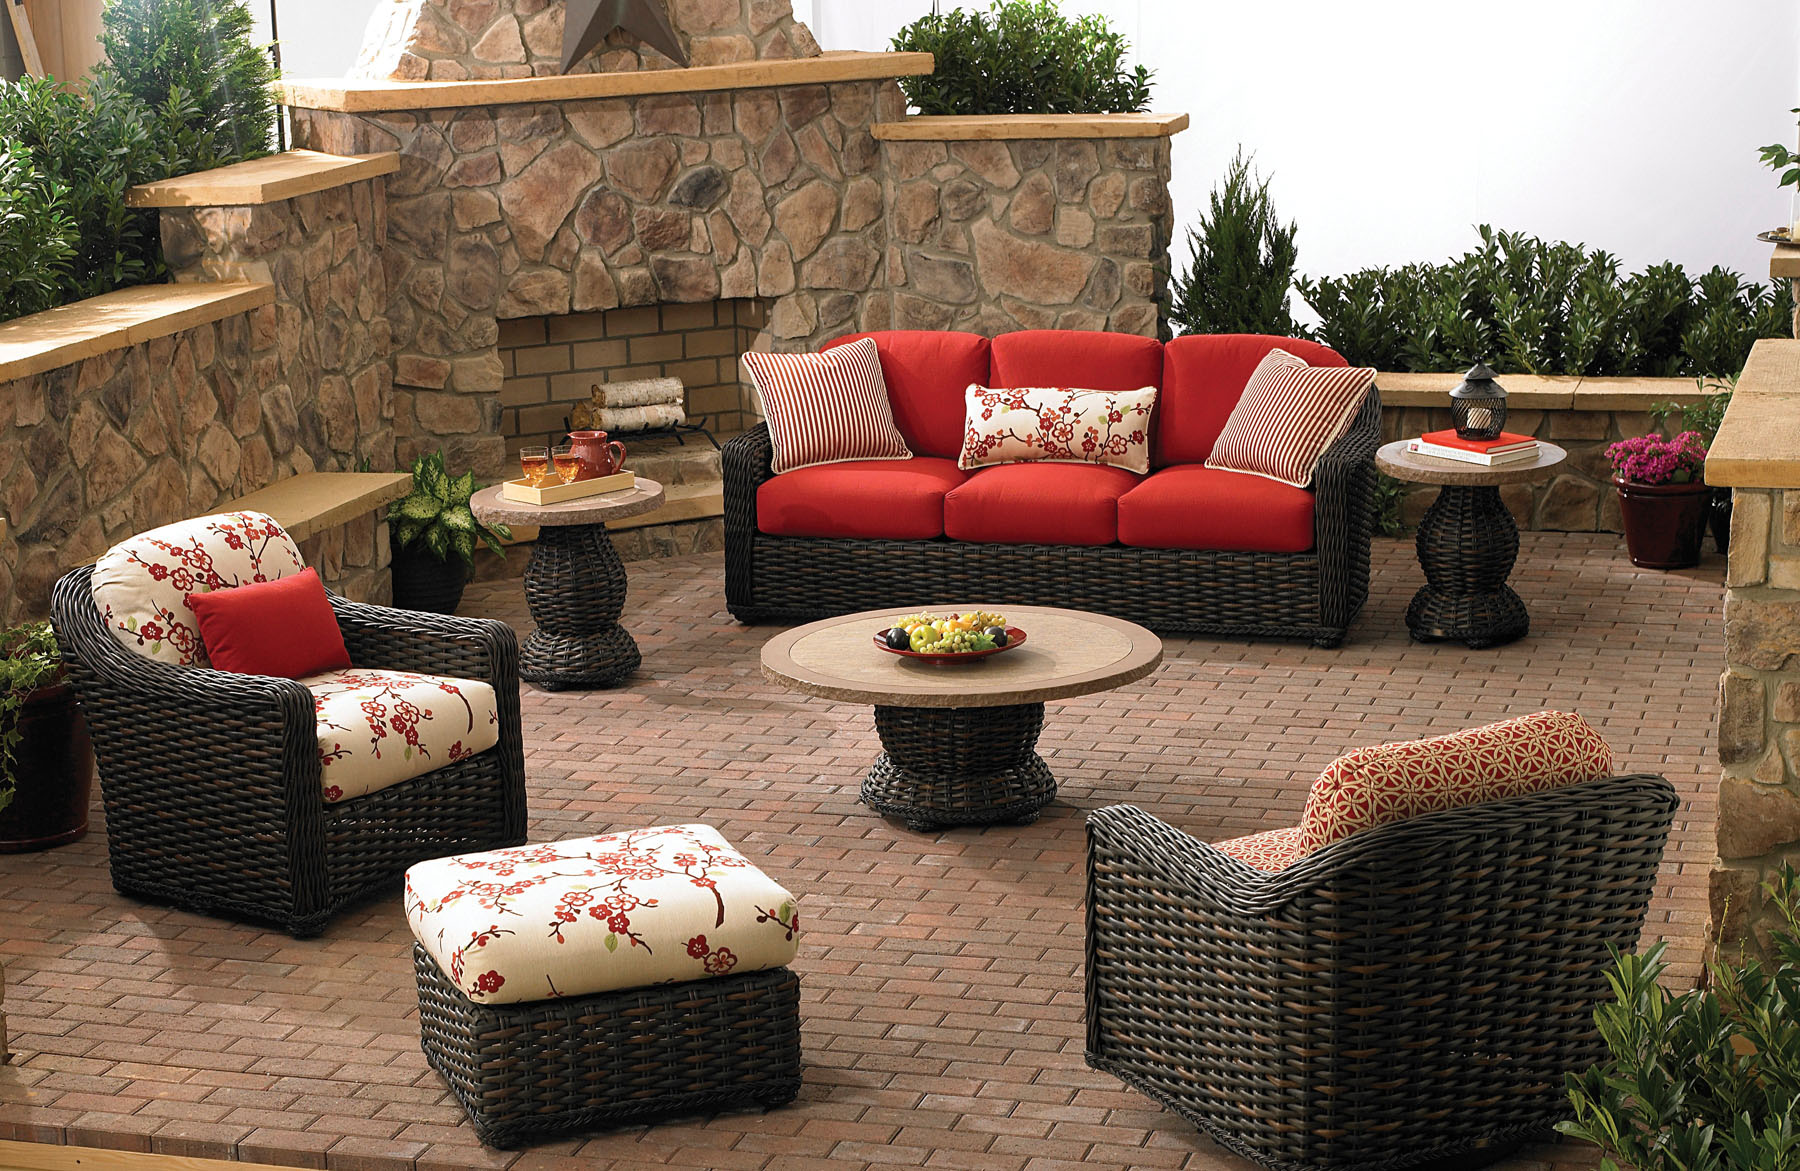 Outdoor Furniture & Patio Furniture Sets in Carefree AZ